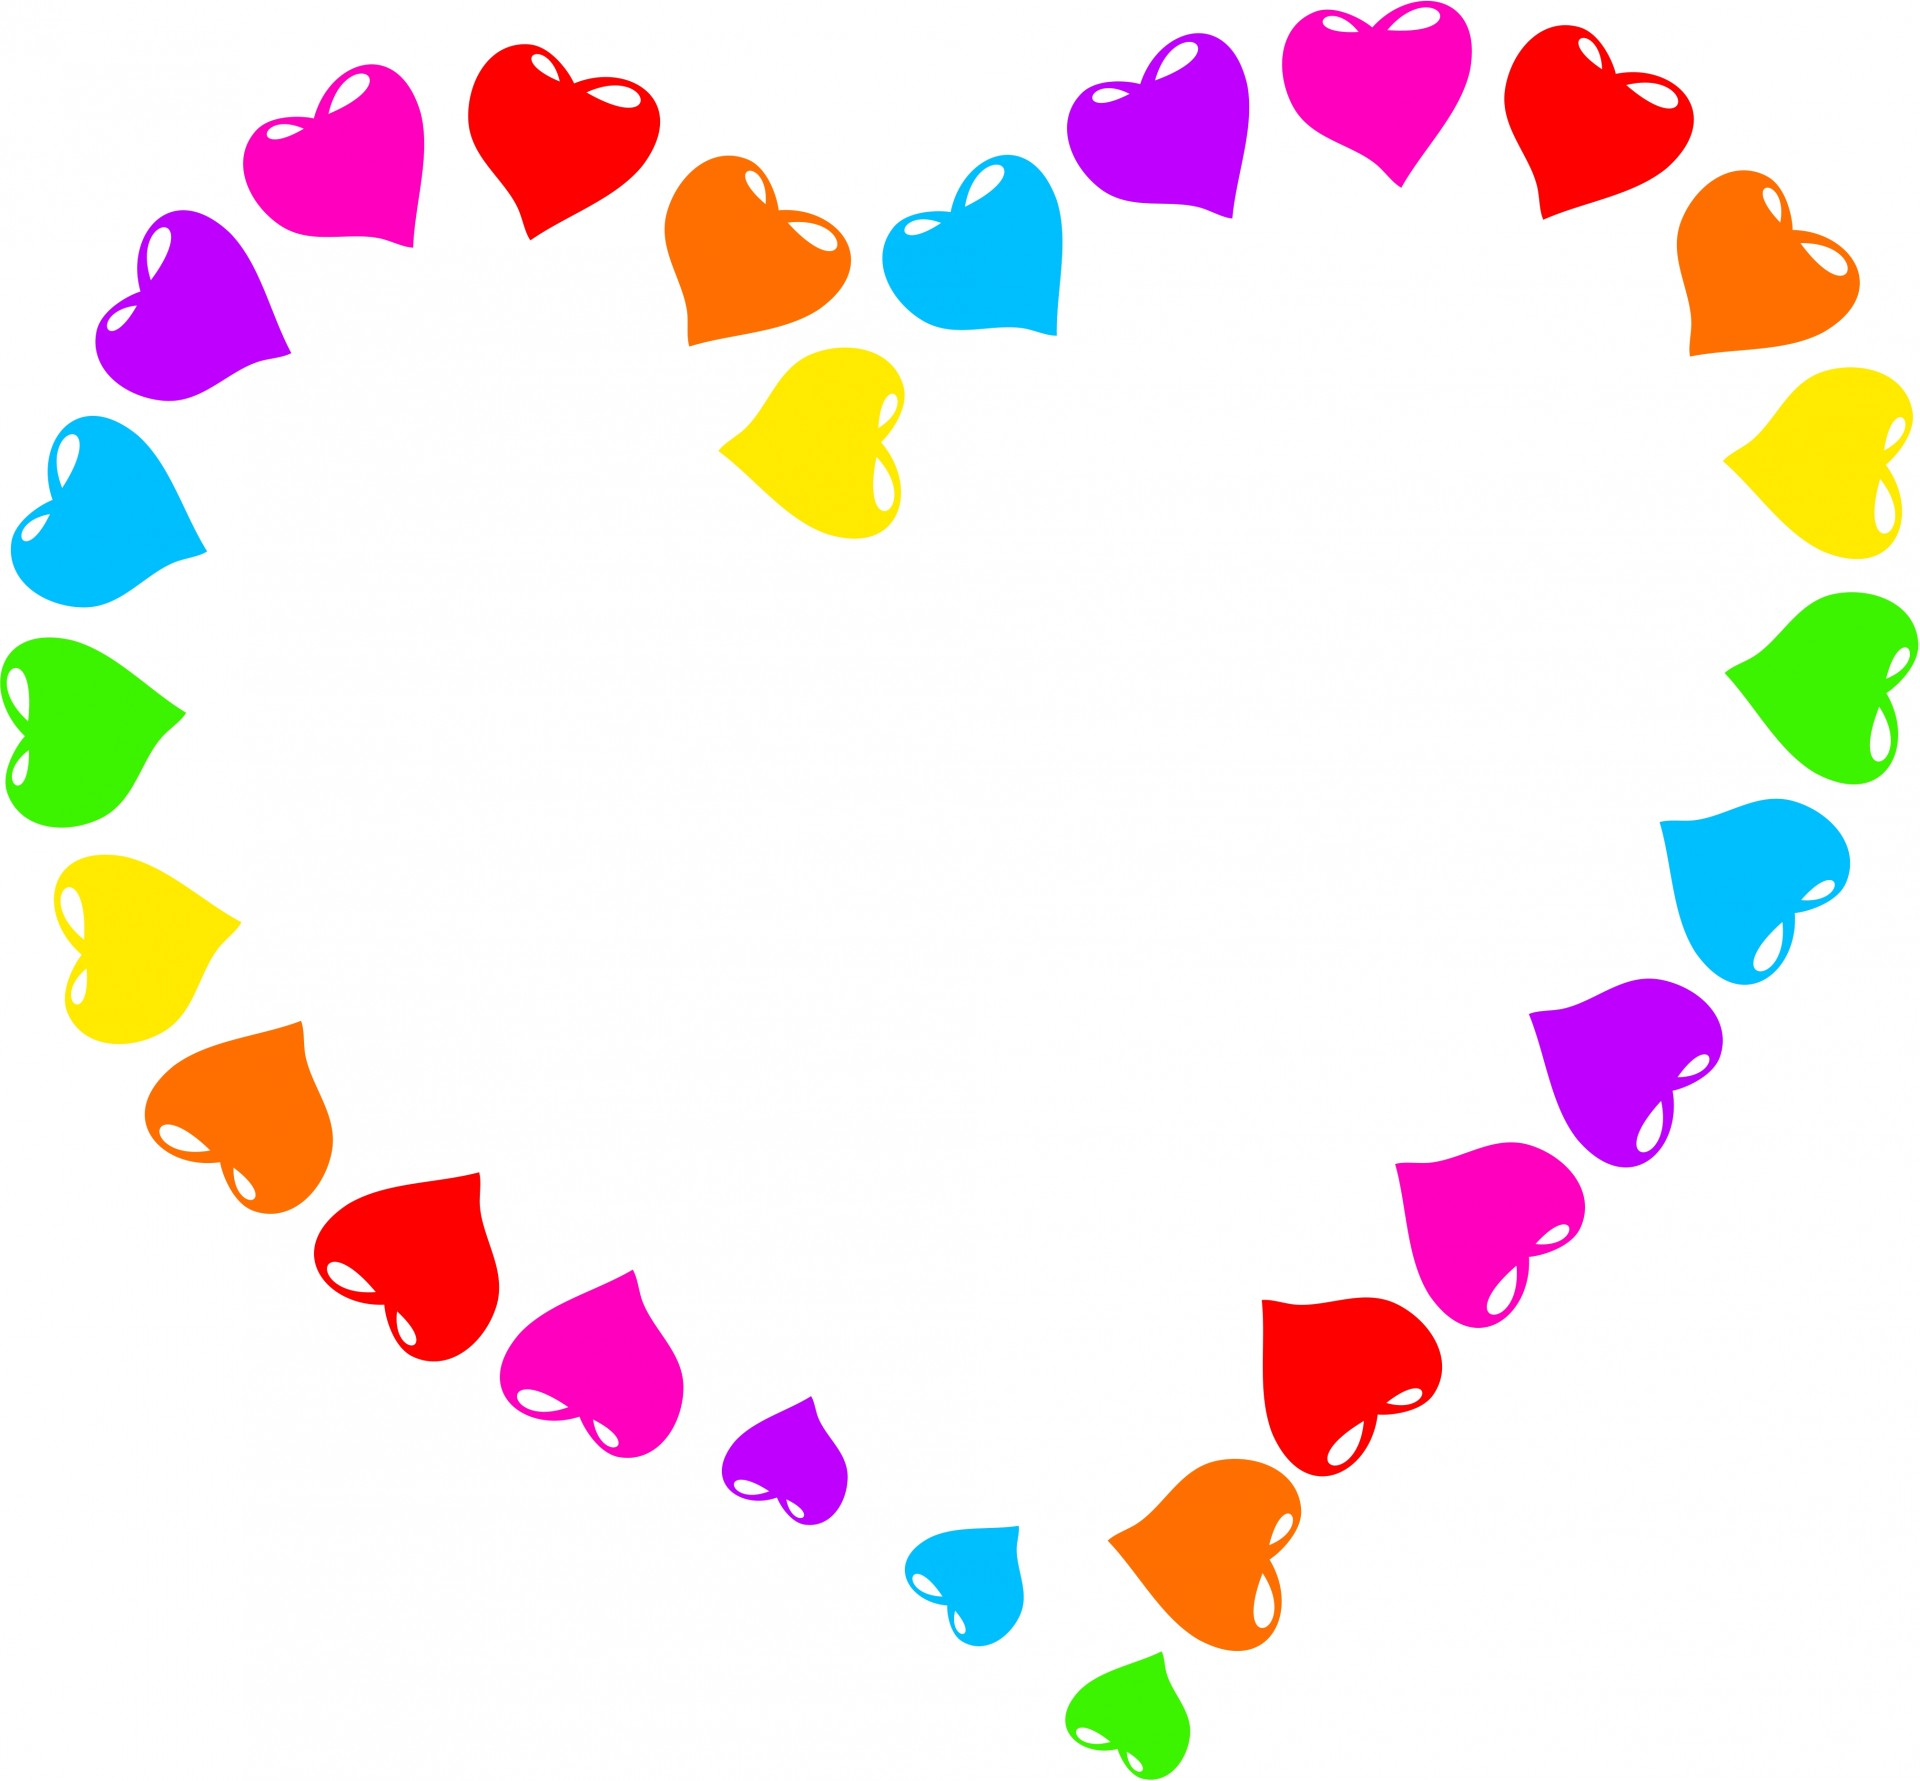 Heart clipart images